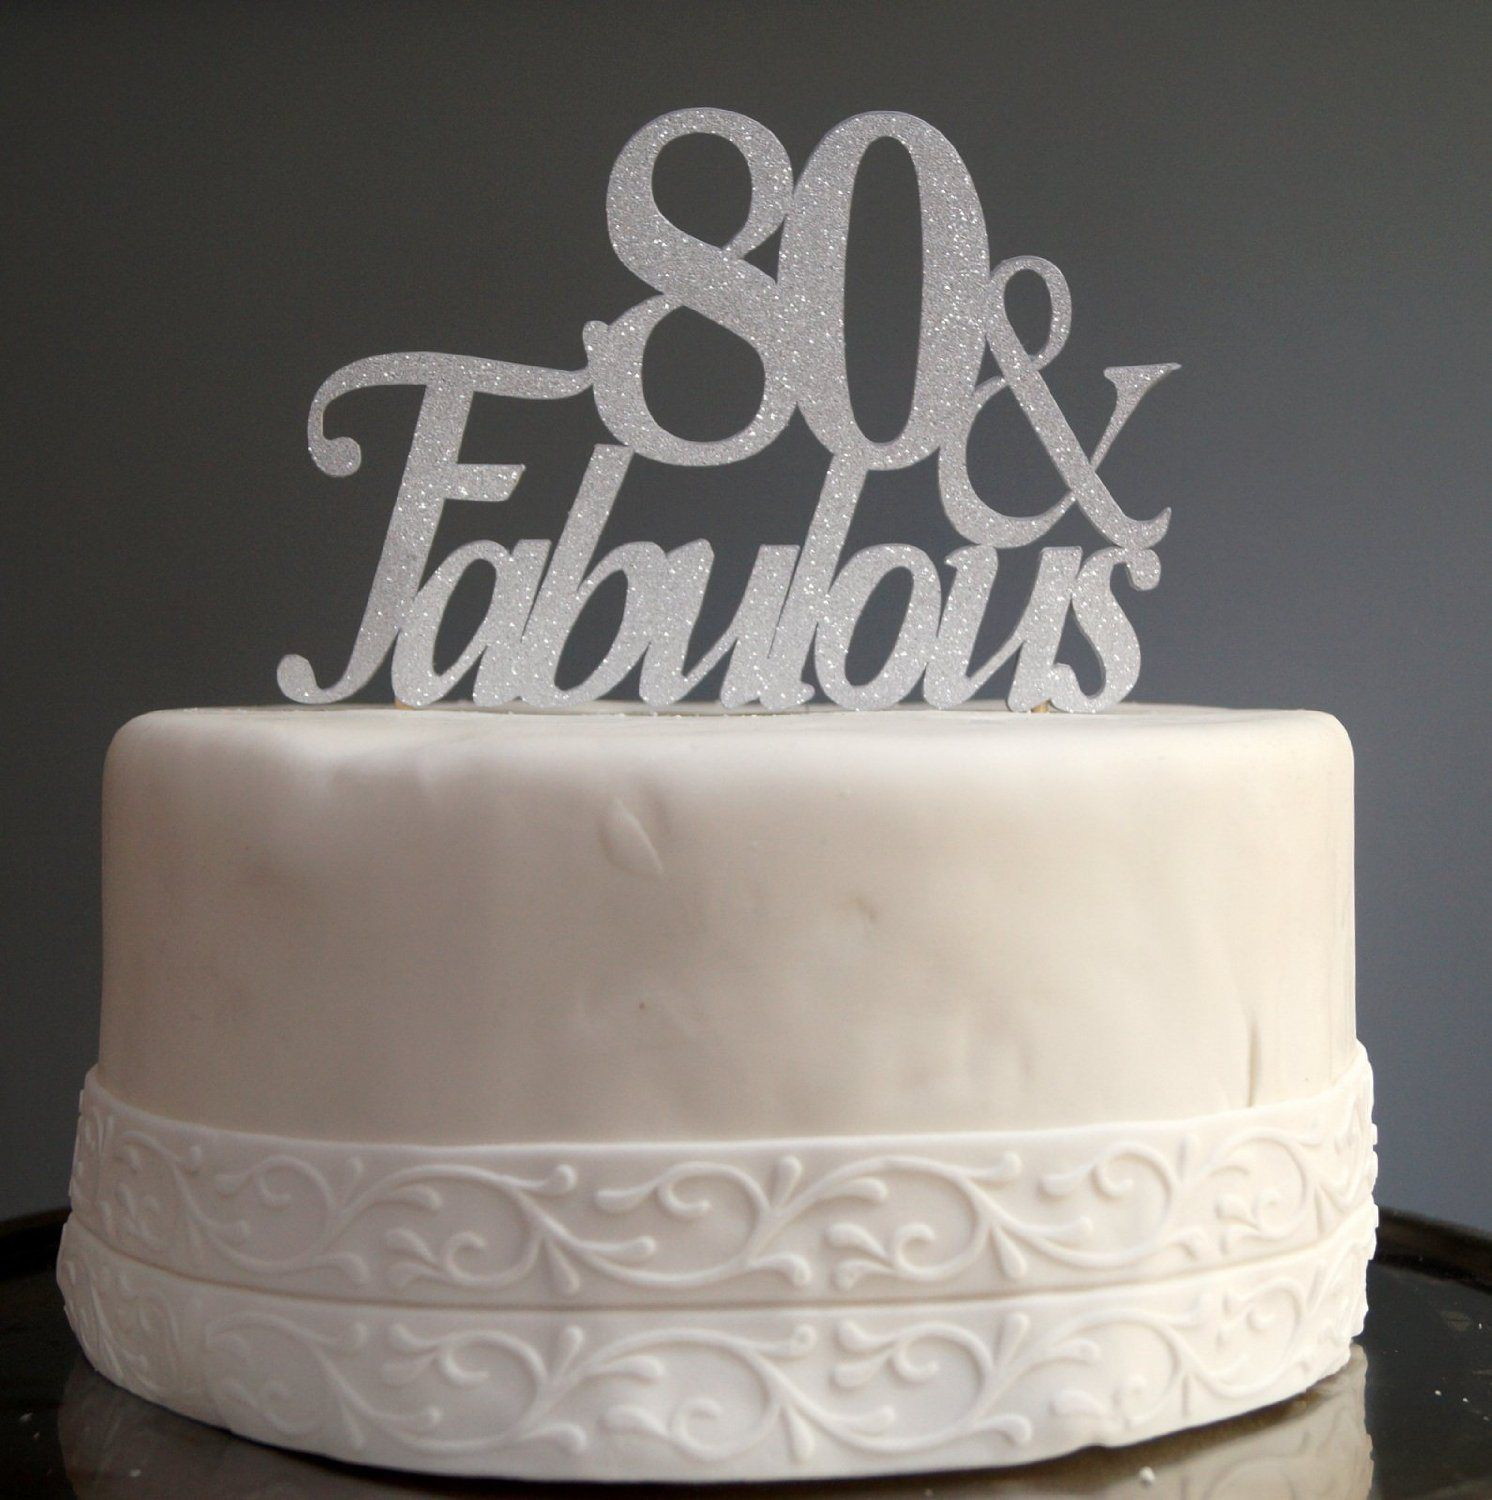 80th Birthday Cakes And Cake Ideas